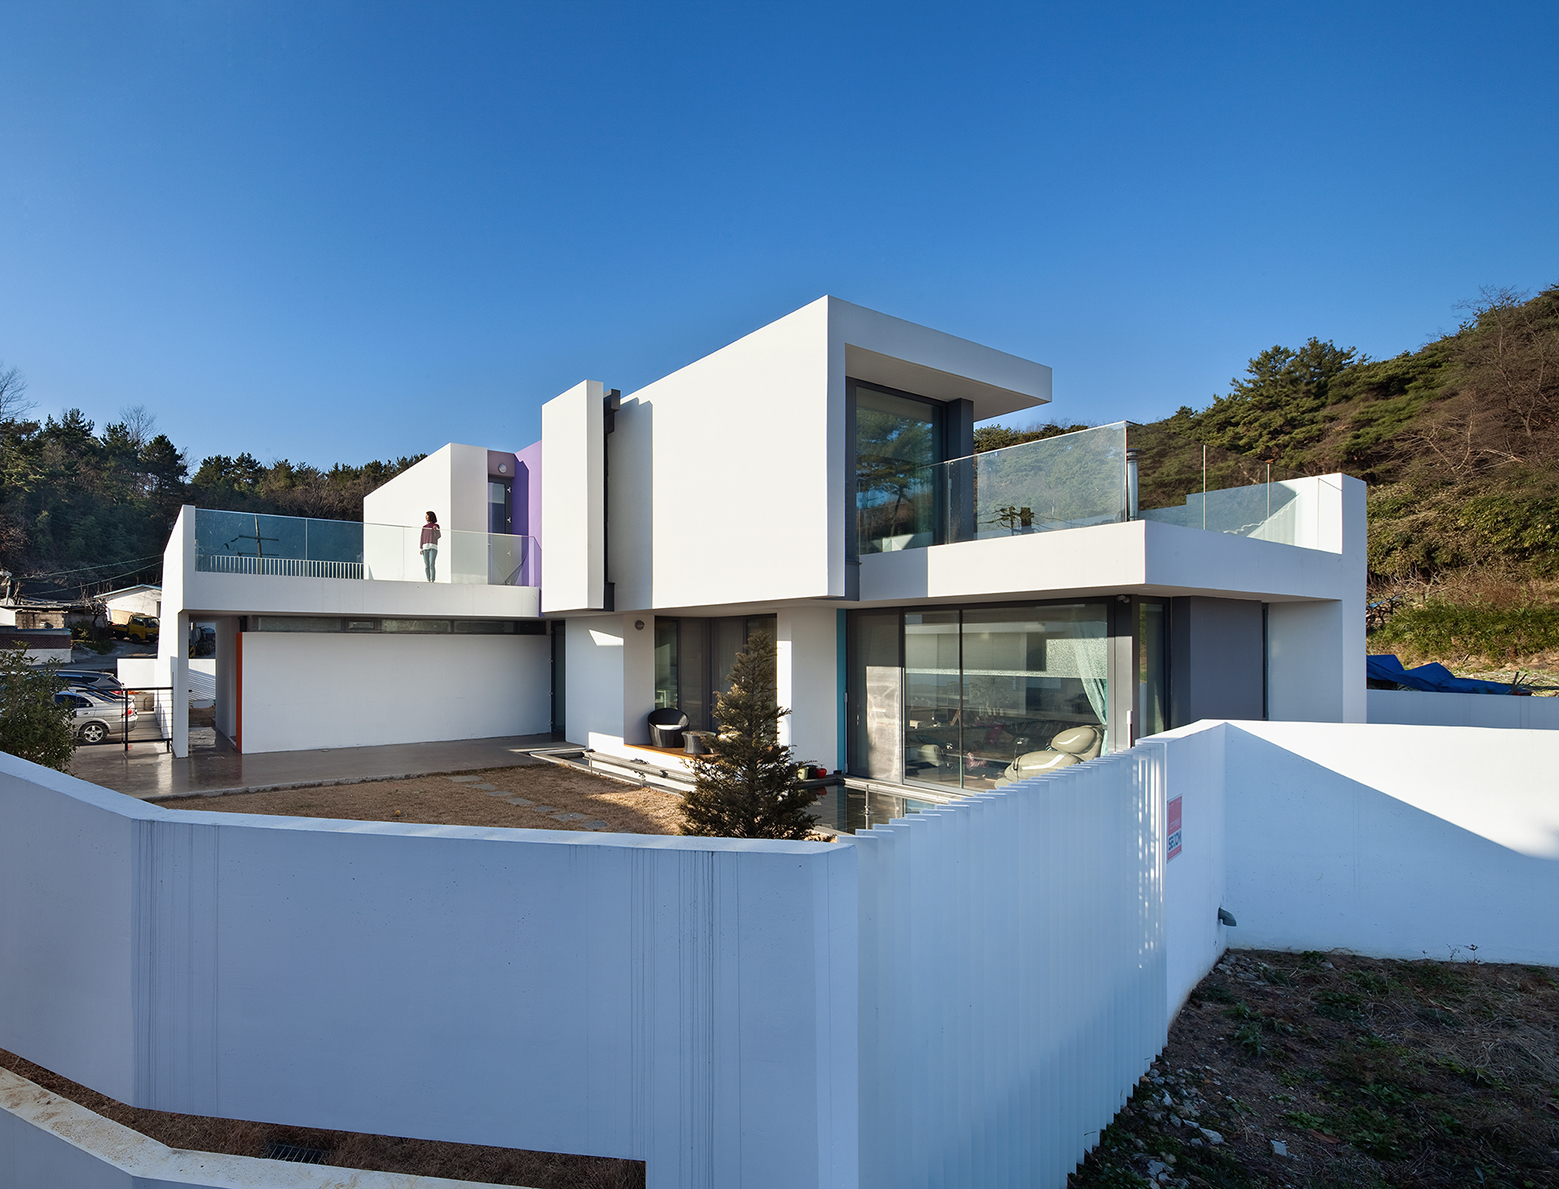 Gyeongsangnam-do South Korea  city pictures gallery : Modern Woljam ri House In Gyeongsangnam do, South Korea